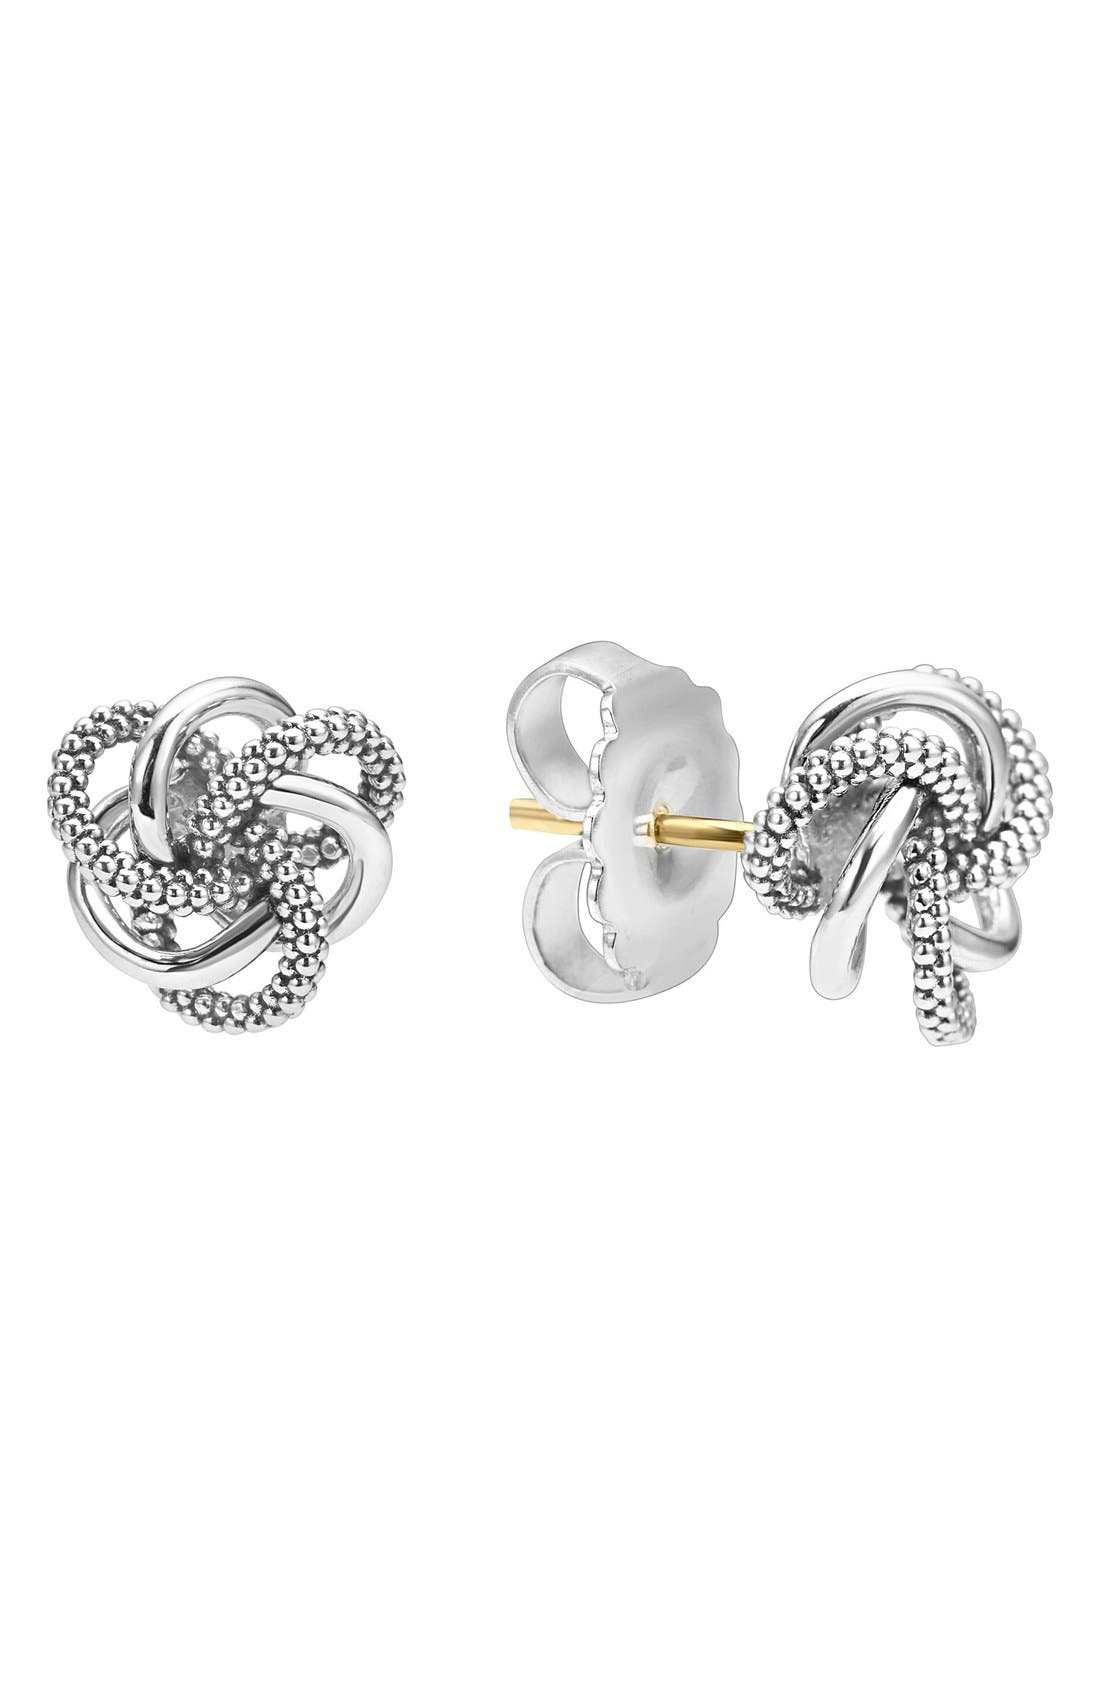 LAGOS 'Love Knot' Sterling Silver Stud Earrings